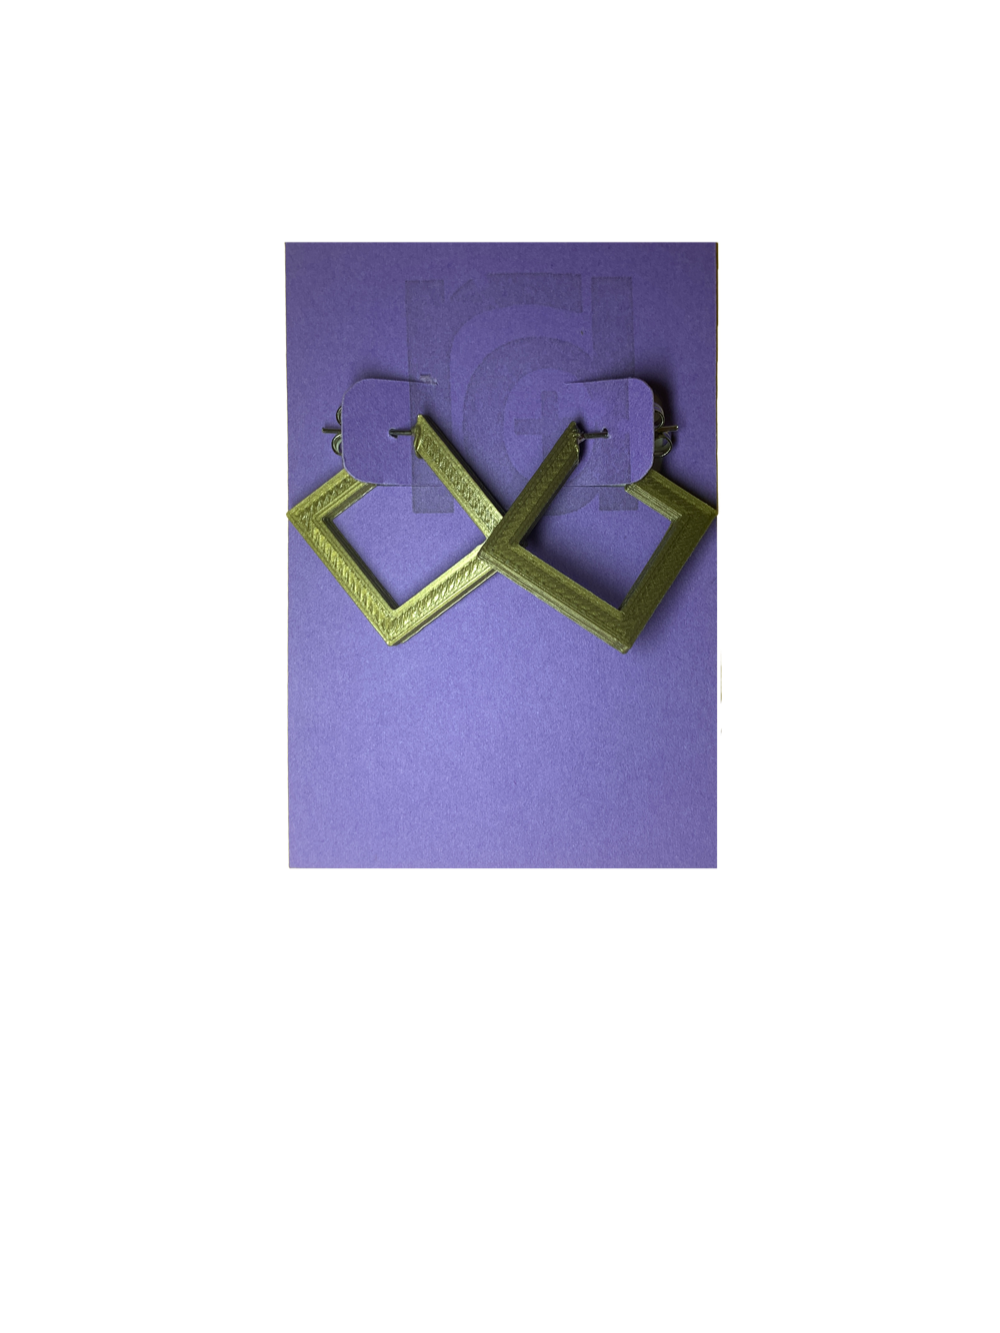 On a bight purple R+D card are two 3D printed earrings. They are hoops that are in the shape of squares. These are printed in a shiny gold.